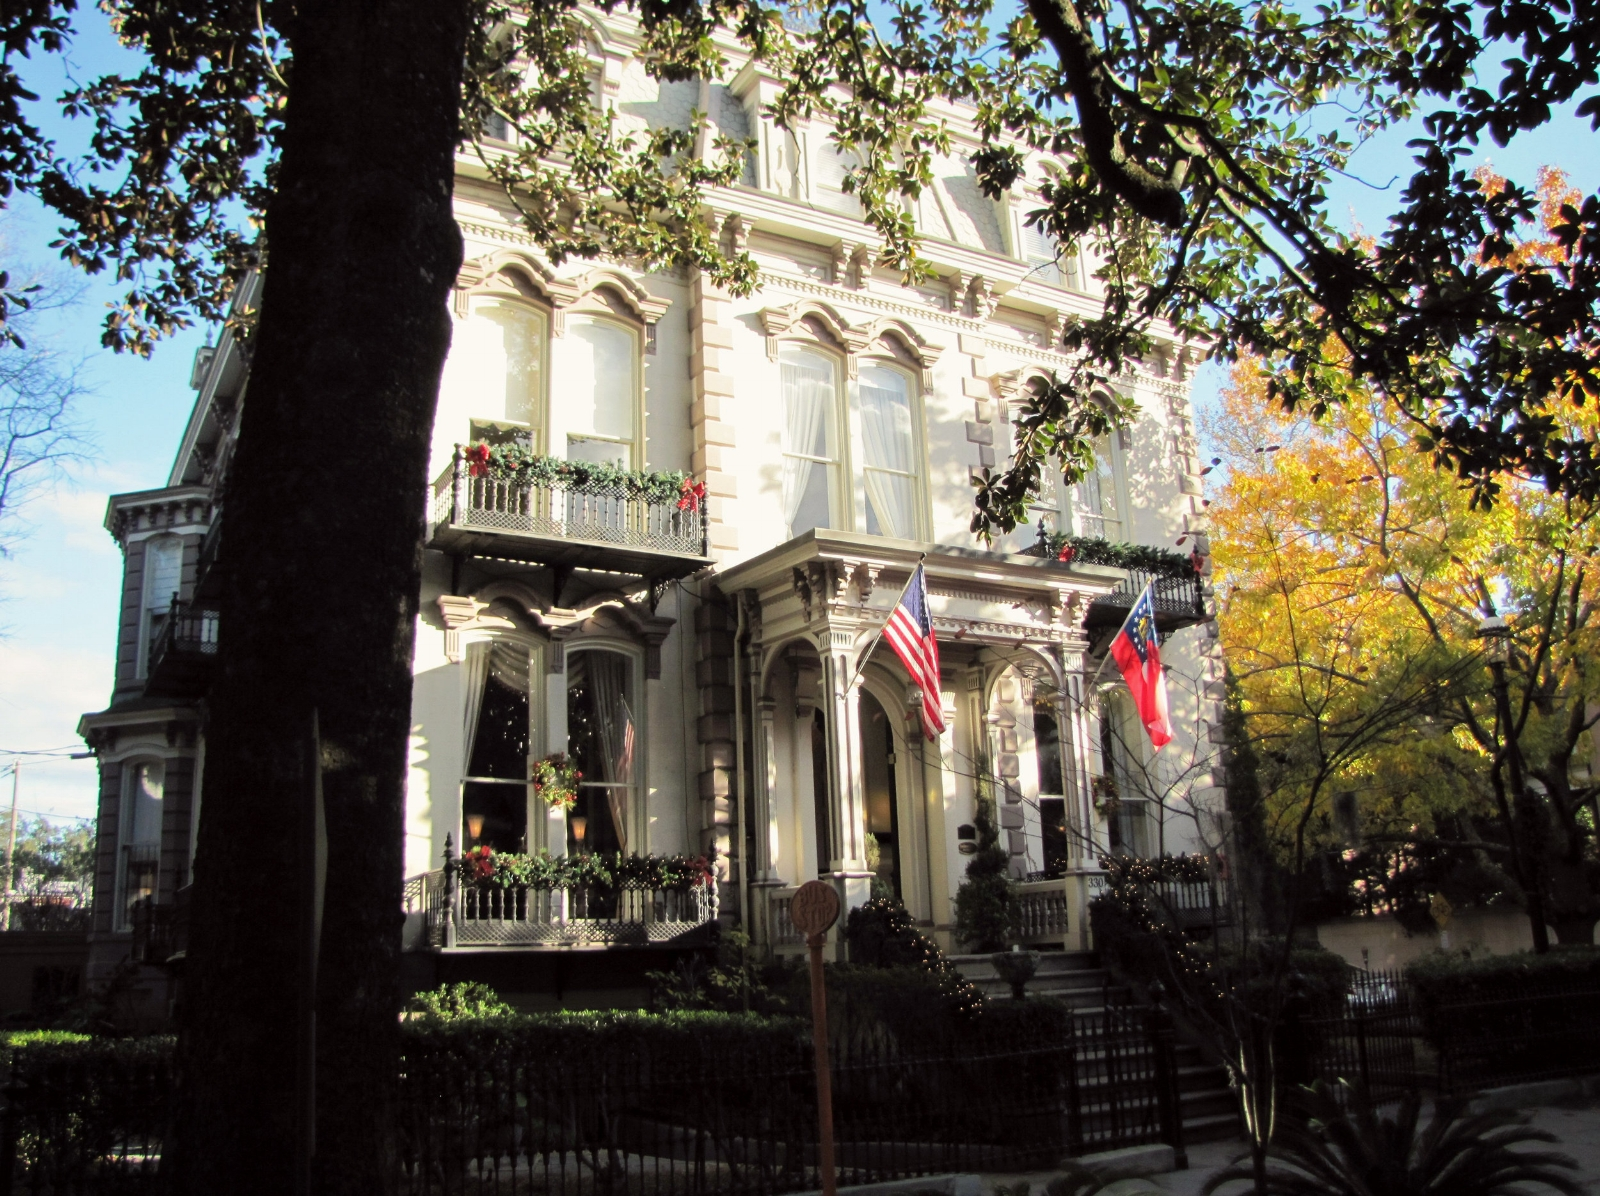 historic house in Savannah with flags